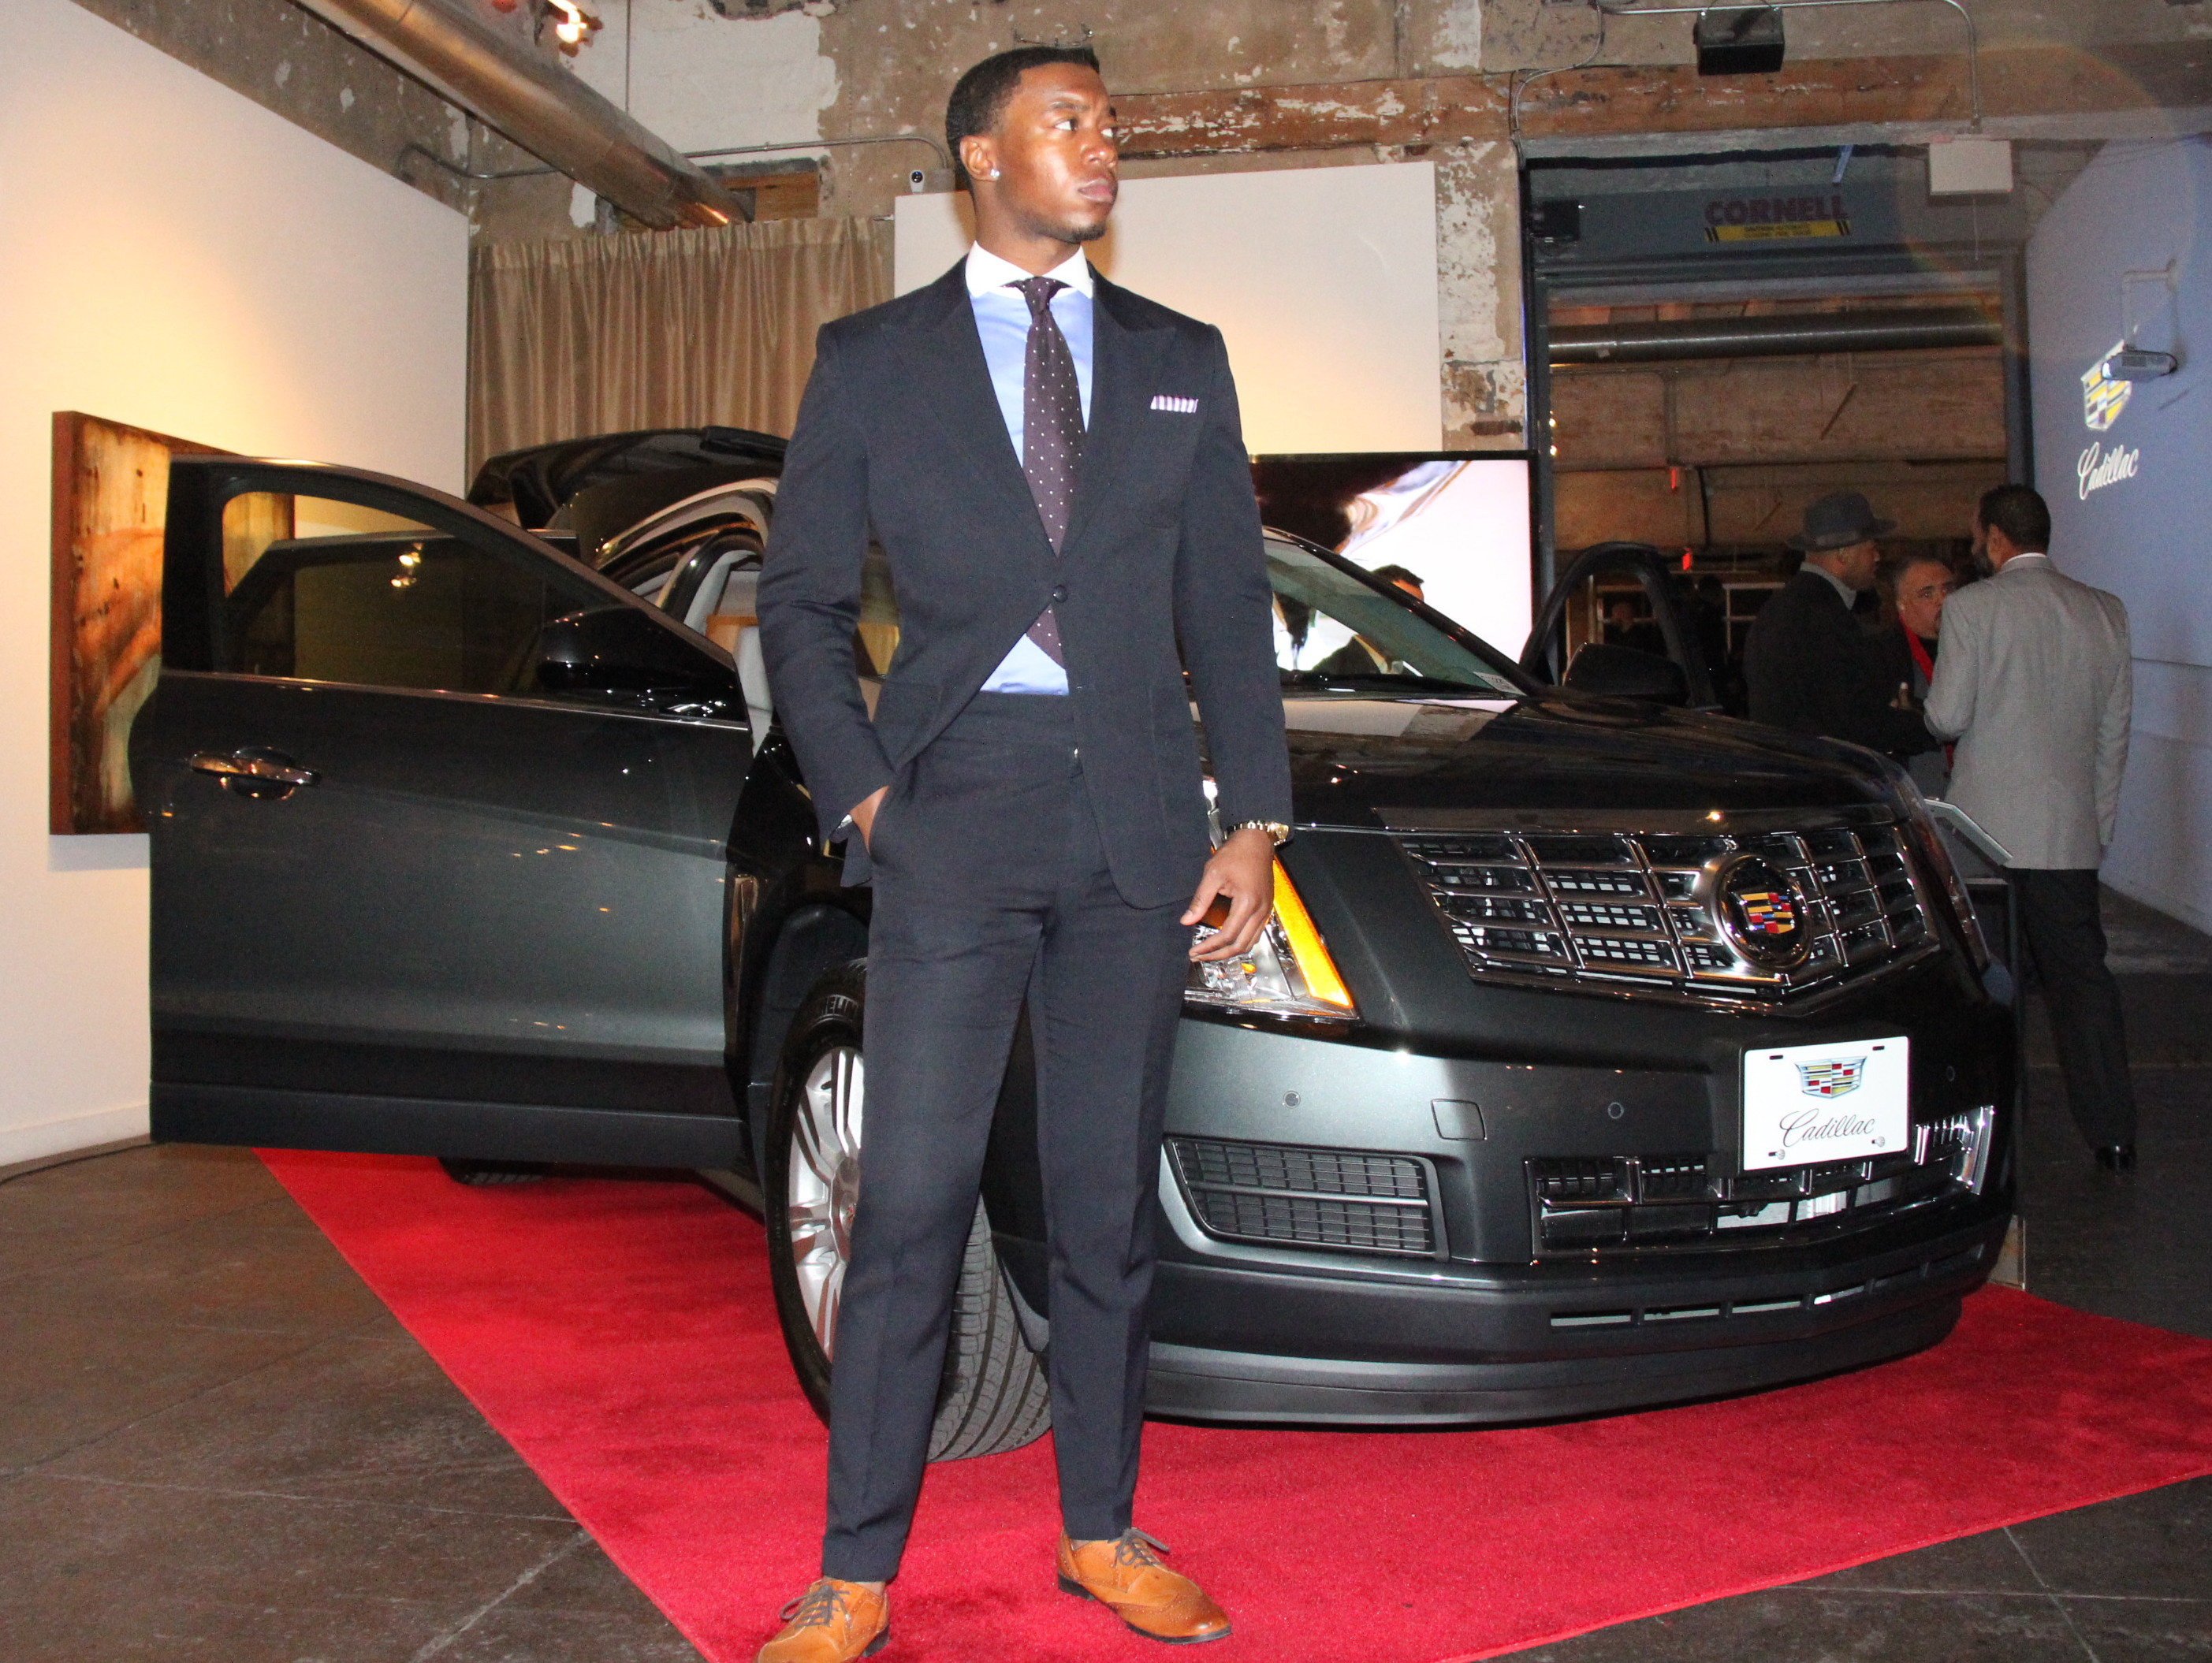 Washington Auto Show Kickoff An Evening Of Style With - Voss chevrolet car show